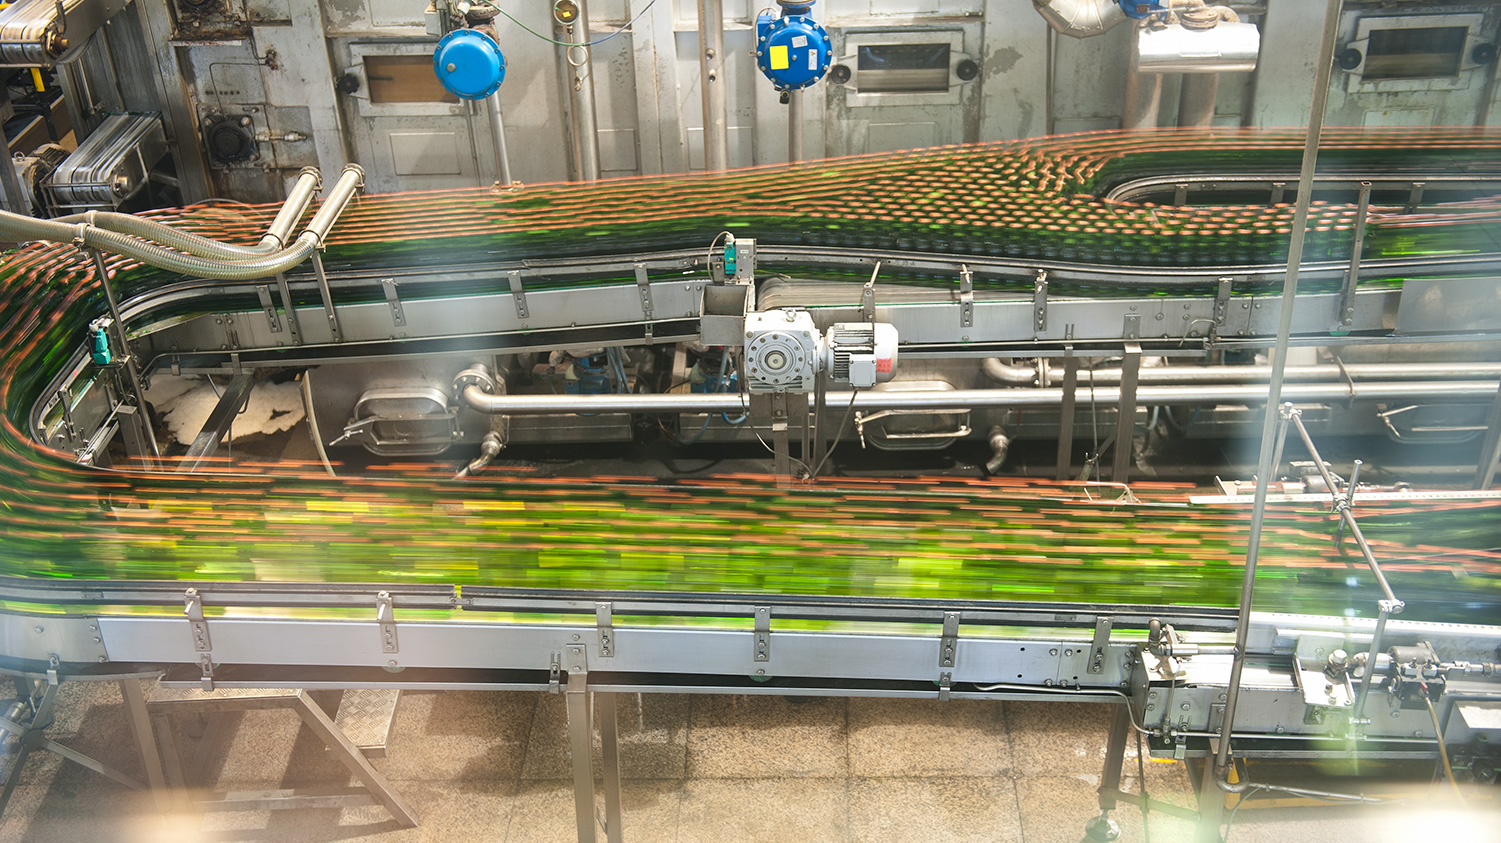 Advanced Real-time Monitoring RFID Technology Applied to High-Speed Can and Bottle Filling Lines